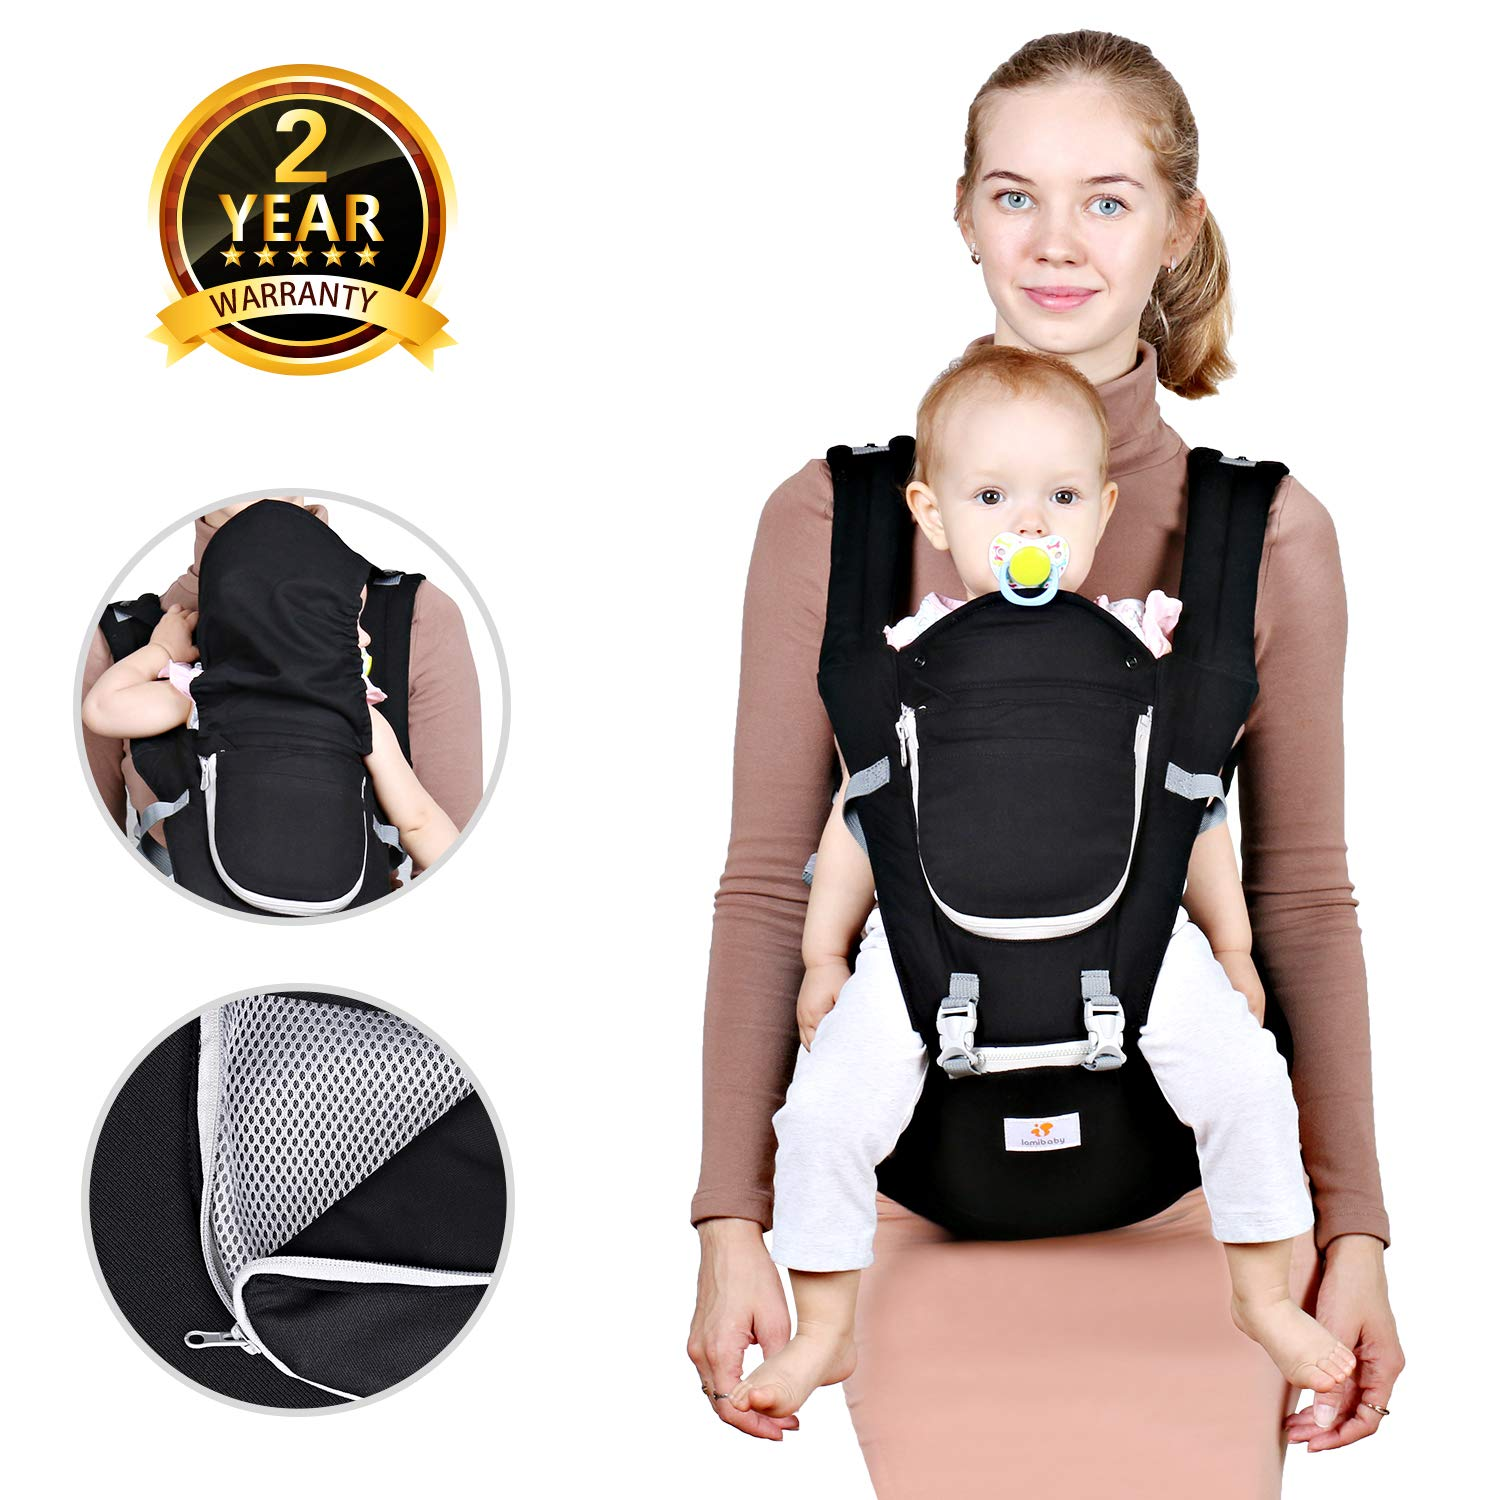 b6a98987c80 Amazon.com   Baby Hip Seat Belt Carrier - Safety Certified Front Facing  Back Pain Relief Soft Carrier (Ergonomic M Position)